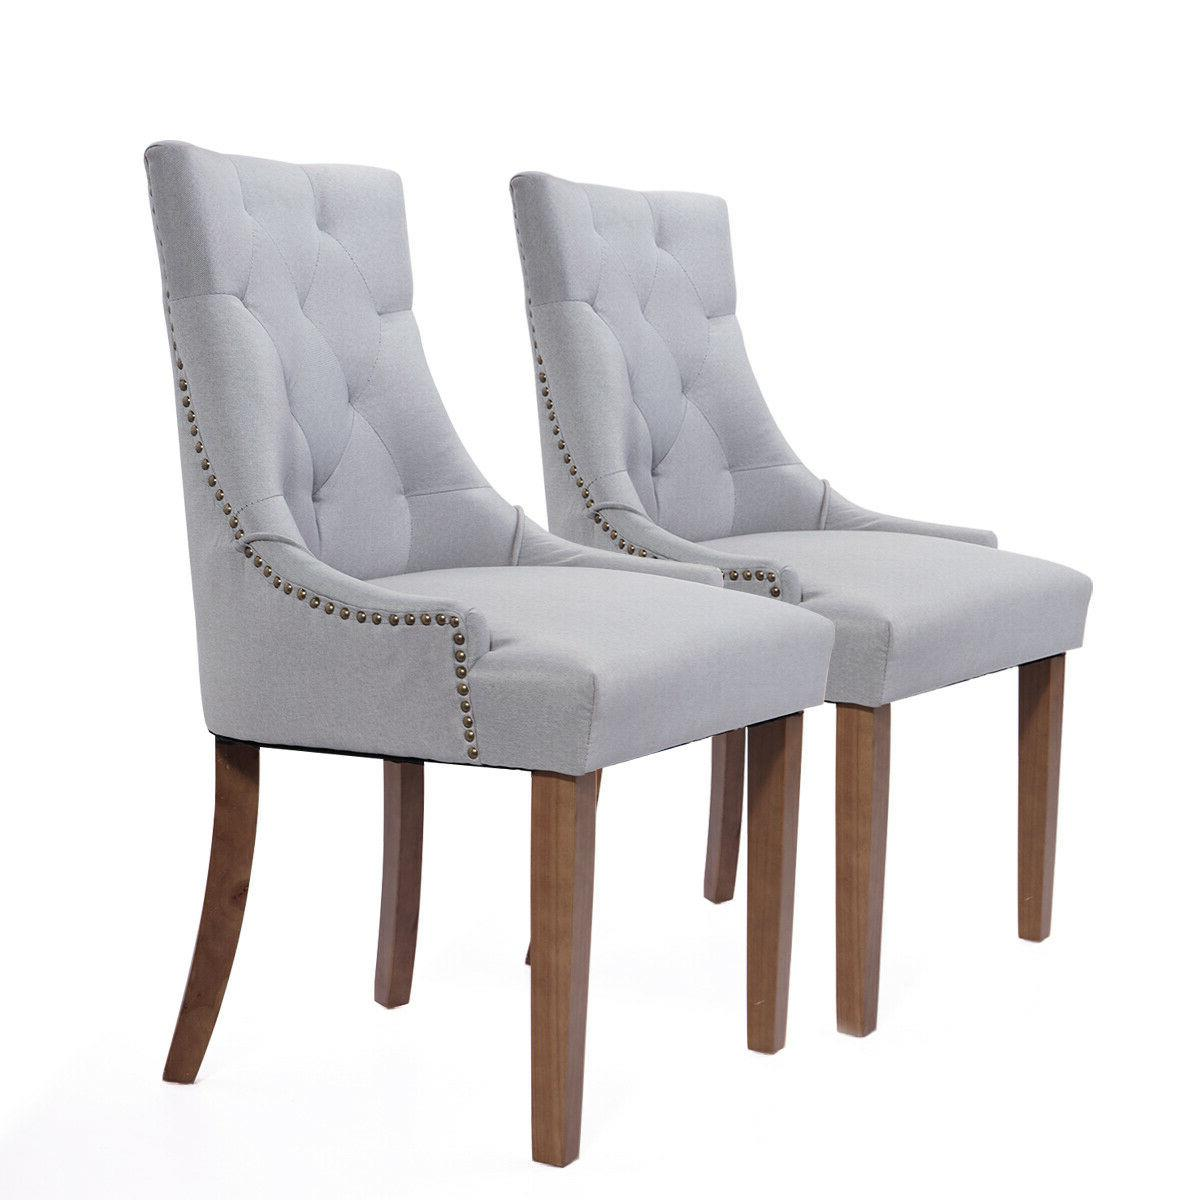 Set of Dining with Solid Legs Gray